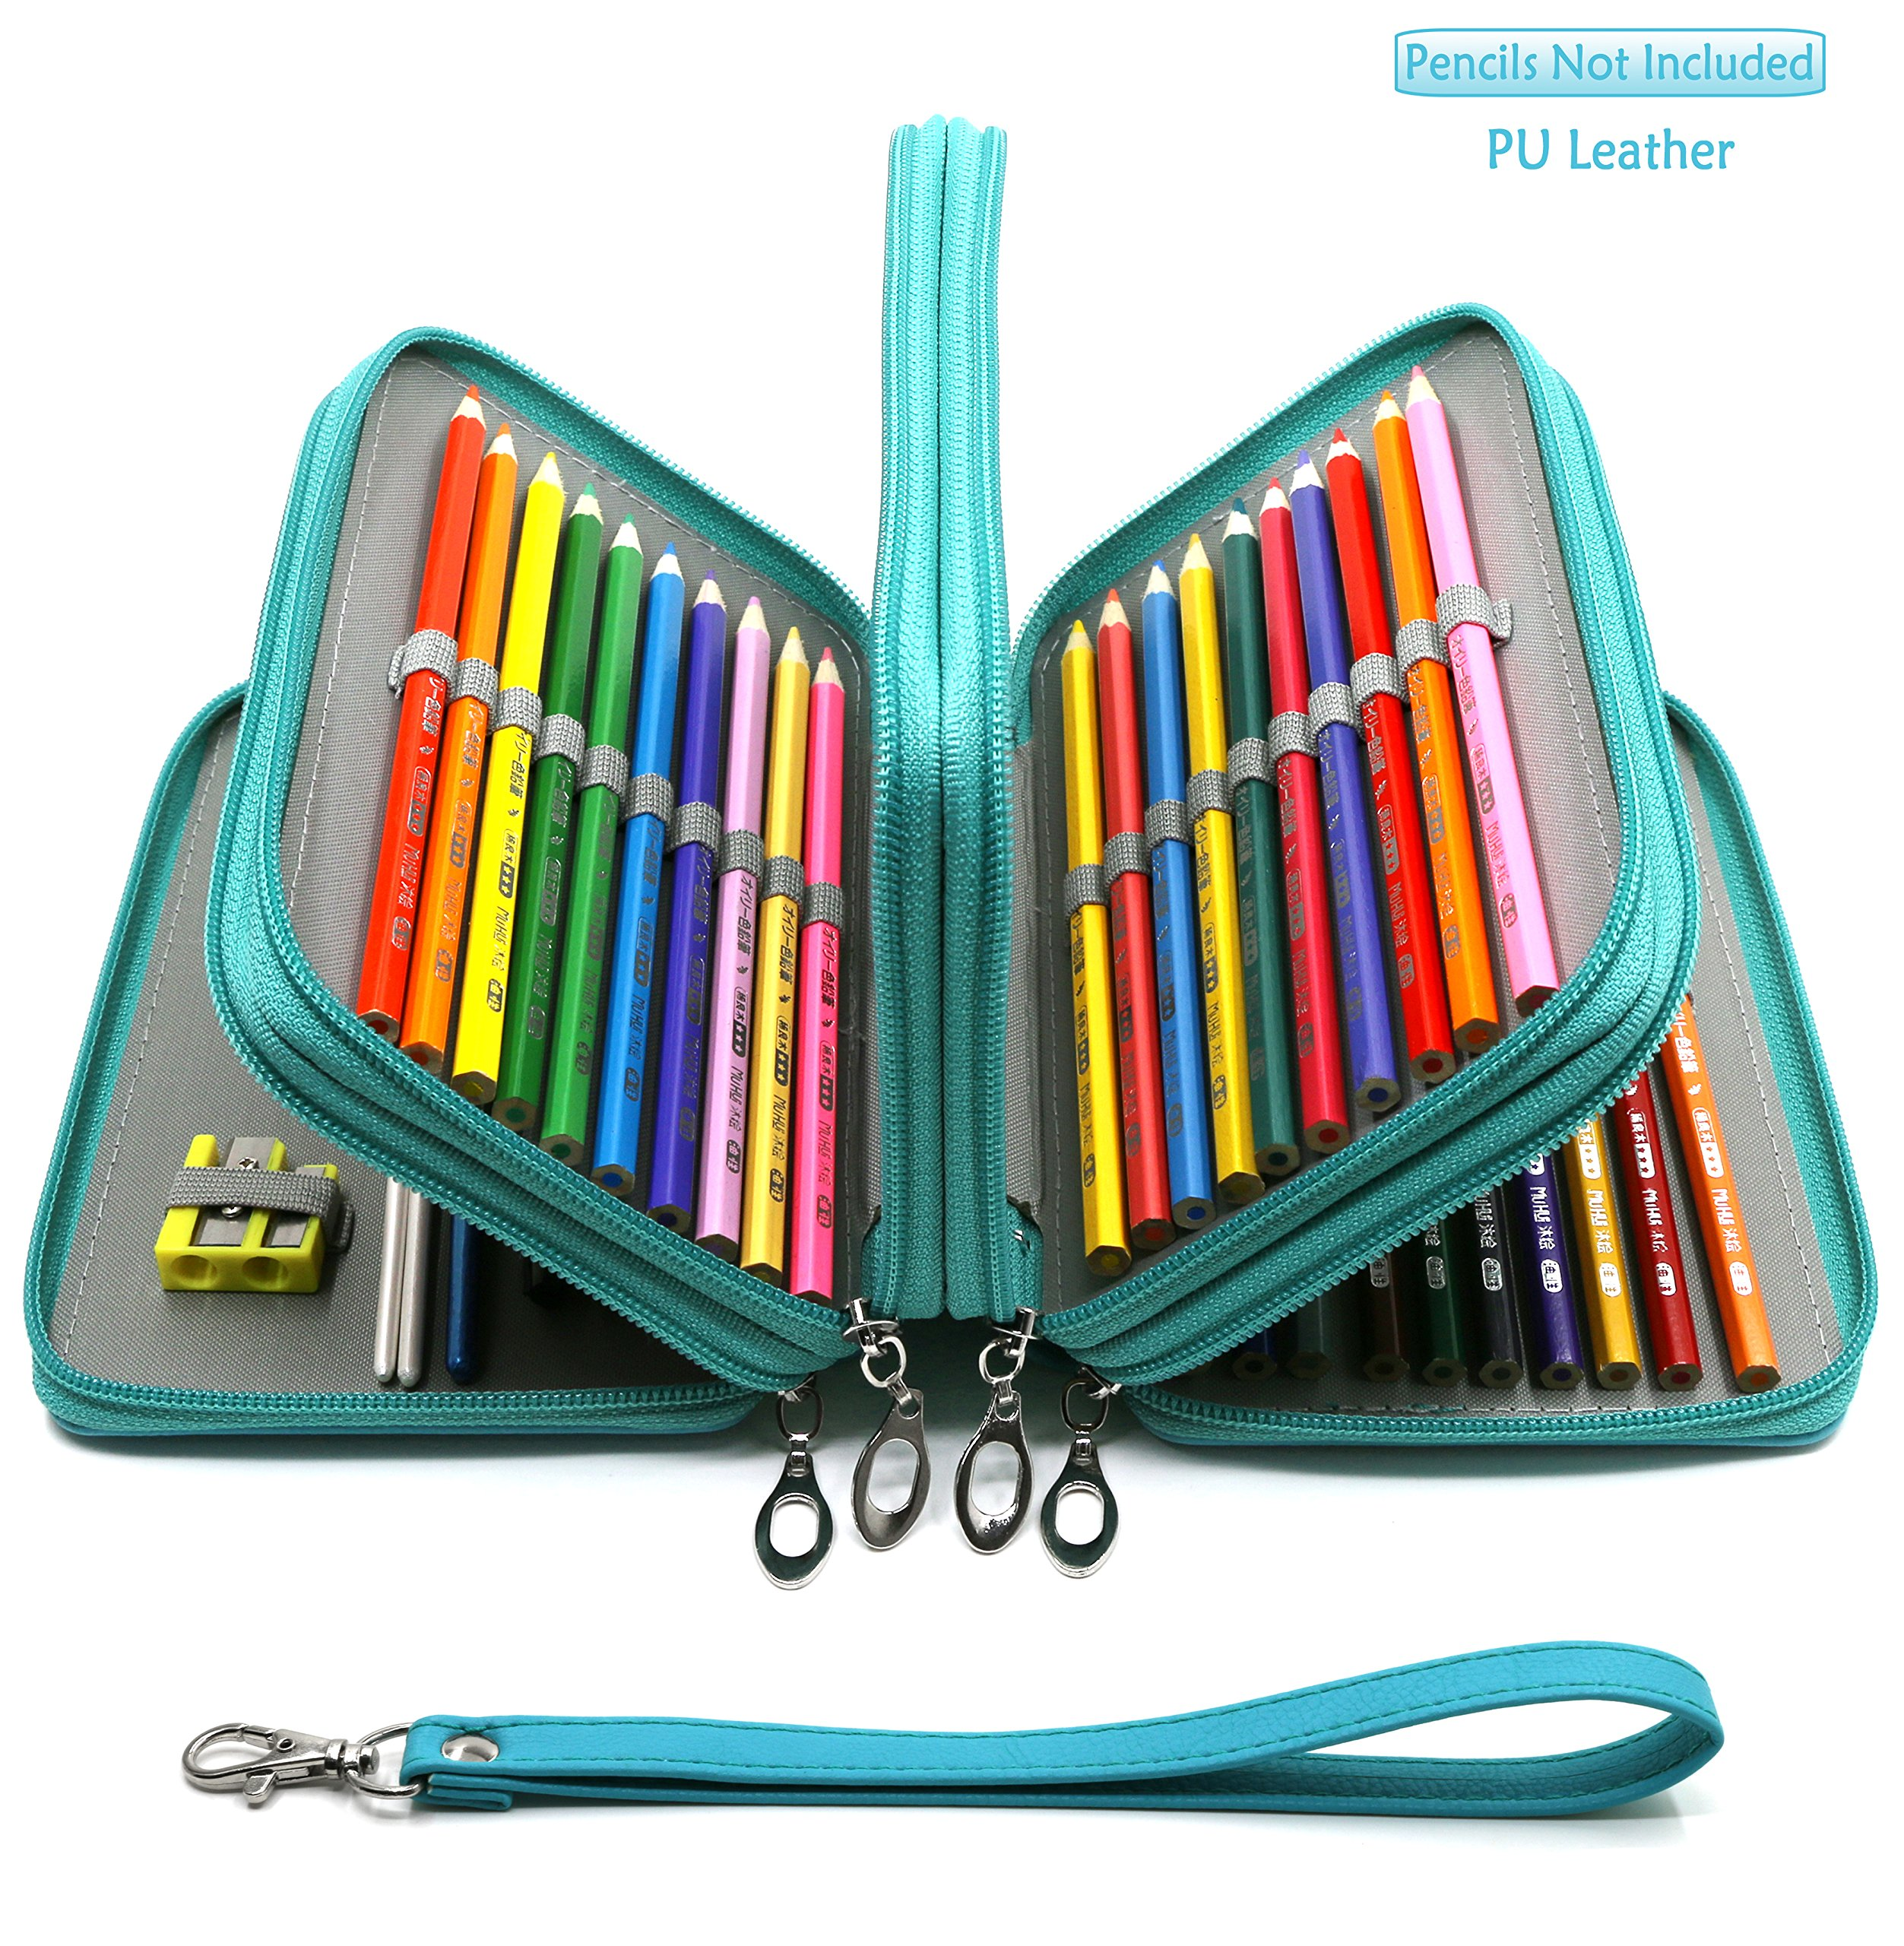 YOUSHARES 72 Slots Pencil Case - PU Leather Handy Multi-layer Large Zipper Pen Bag with Handle Strap for Colored / Watercolor Pencils, Gel Pen, Makeup Brush, Small Marker and Sharpener (Turquoise)